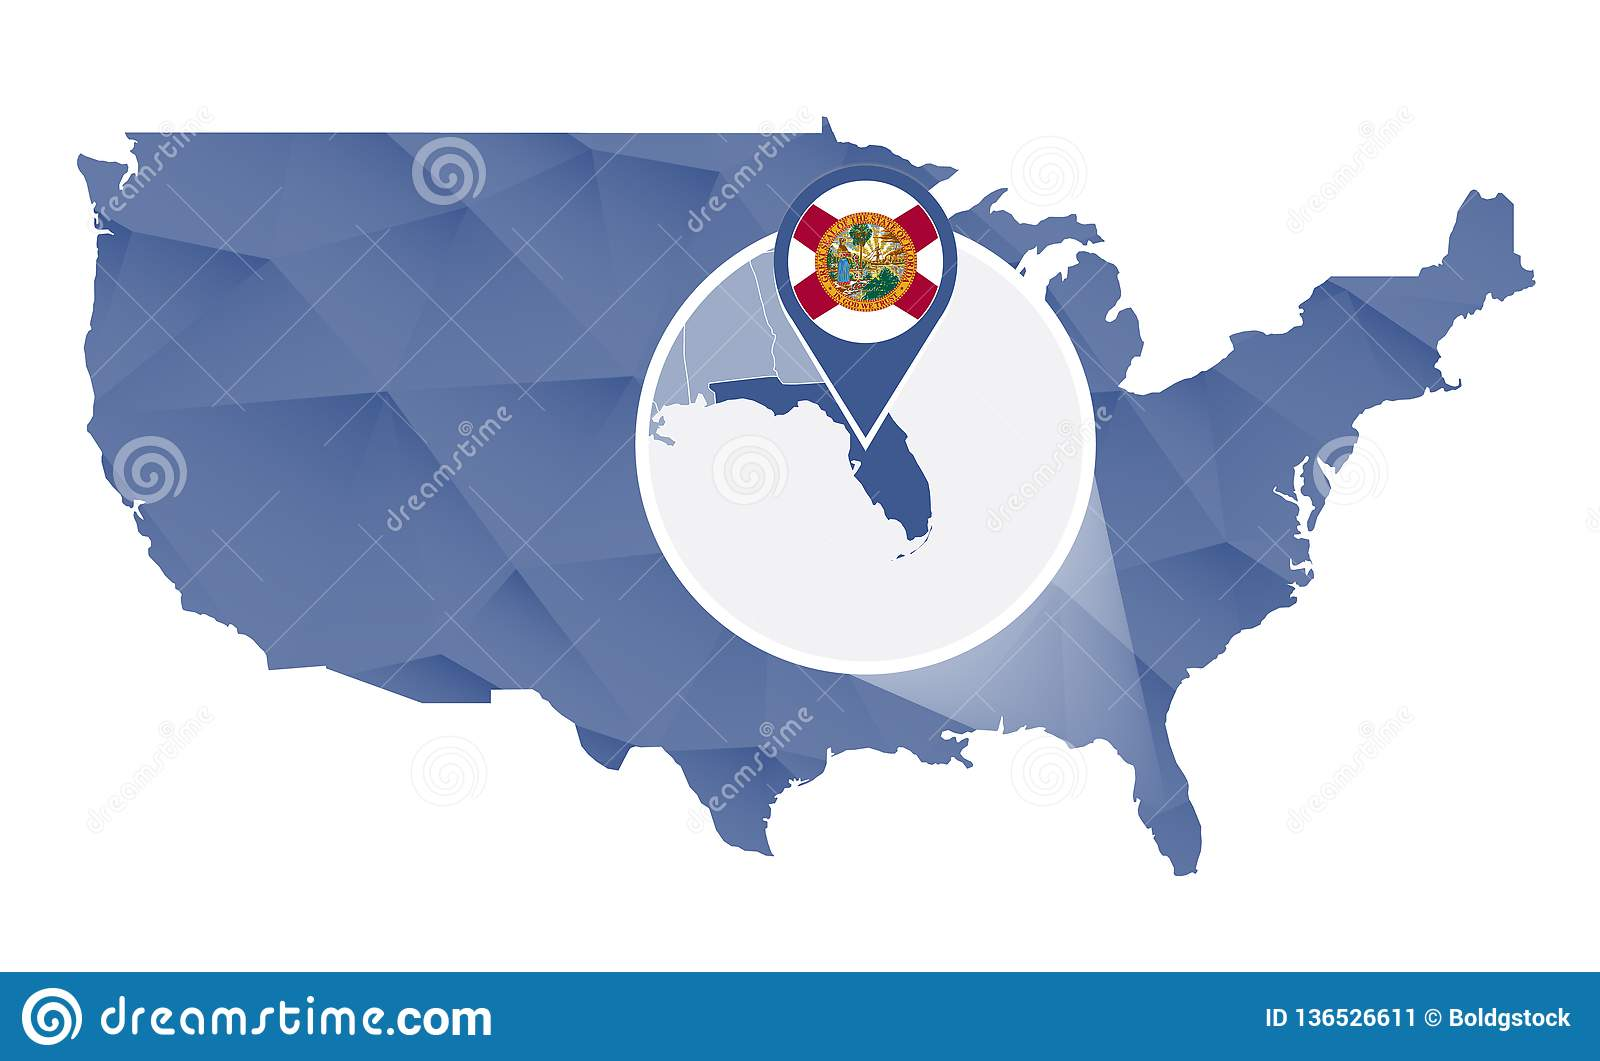 Usa Map Florida State.Florida State Magnified On United States Map Stock Vector